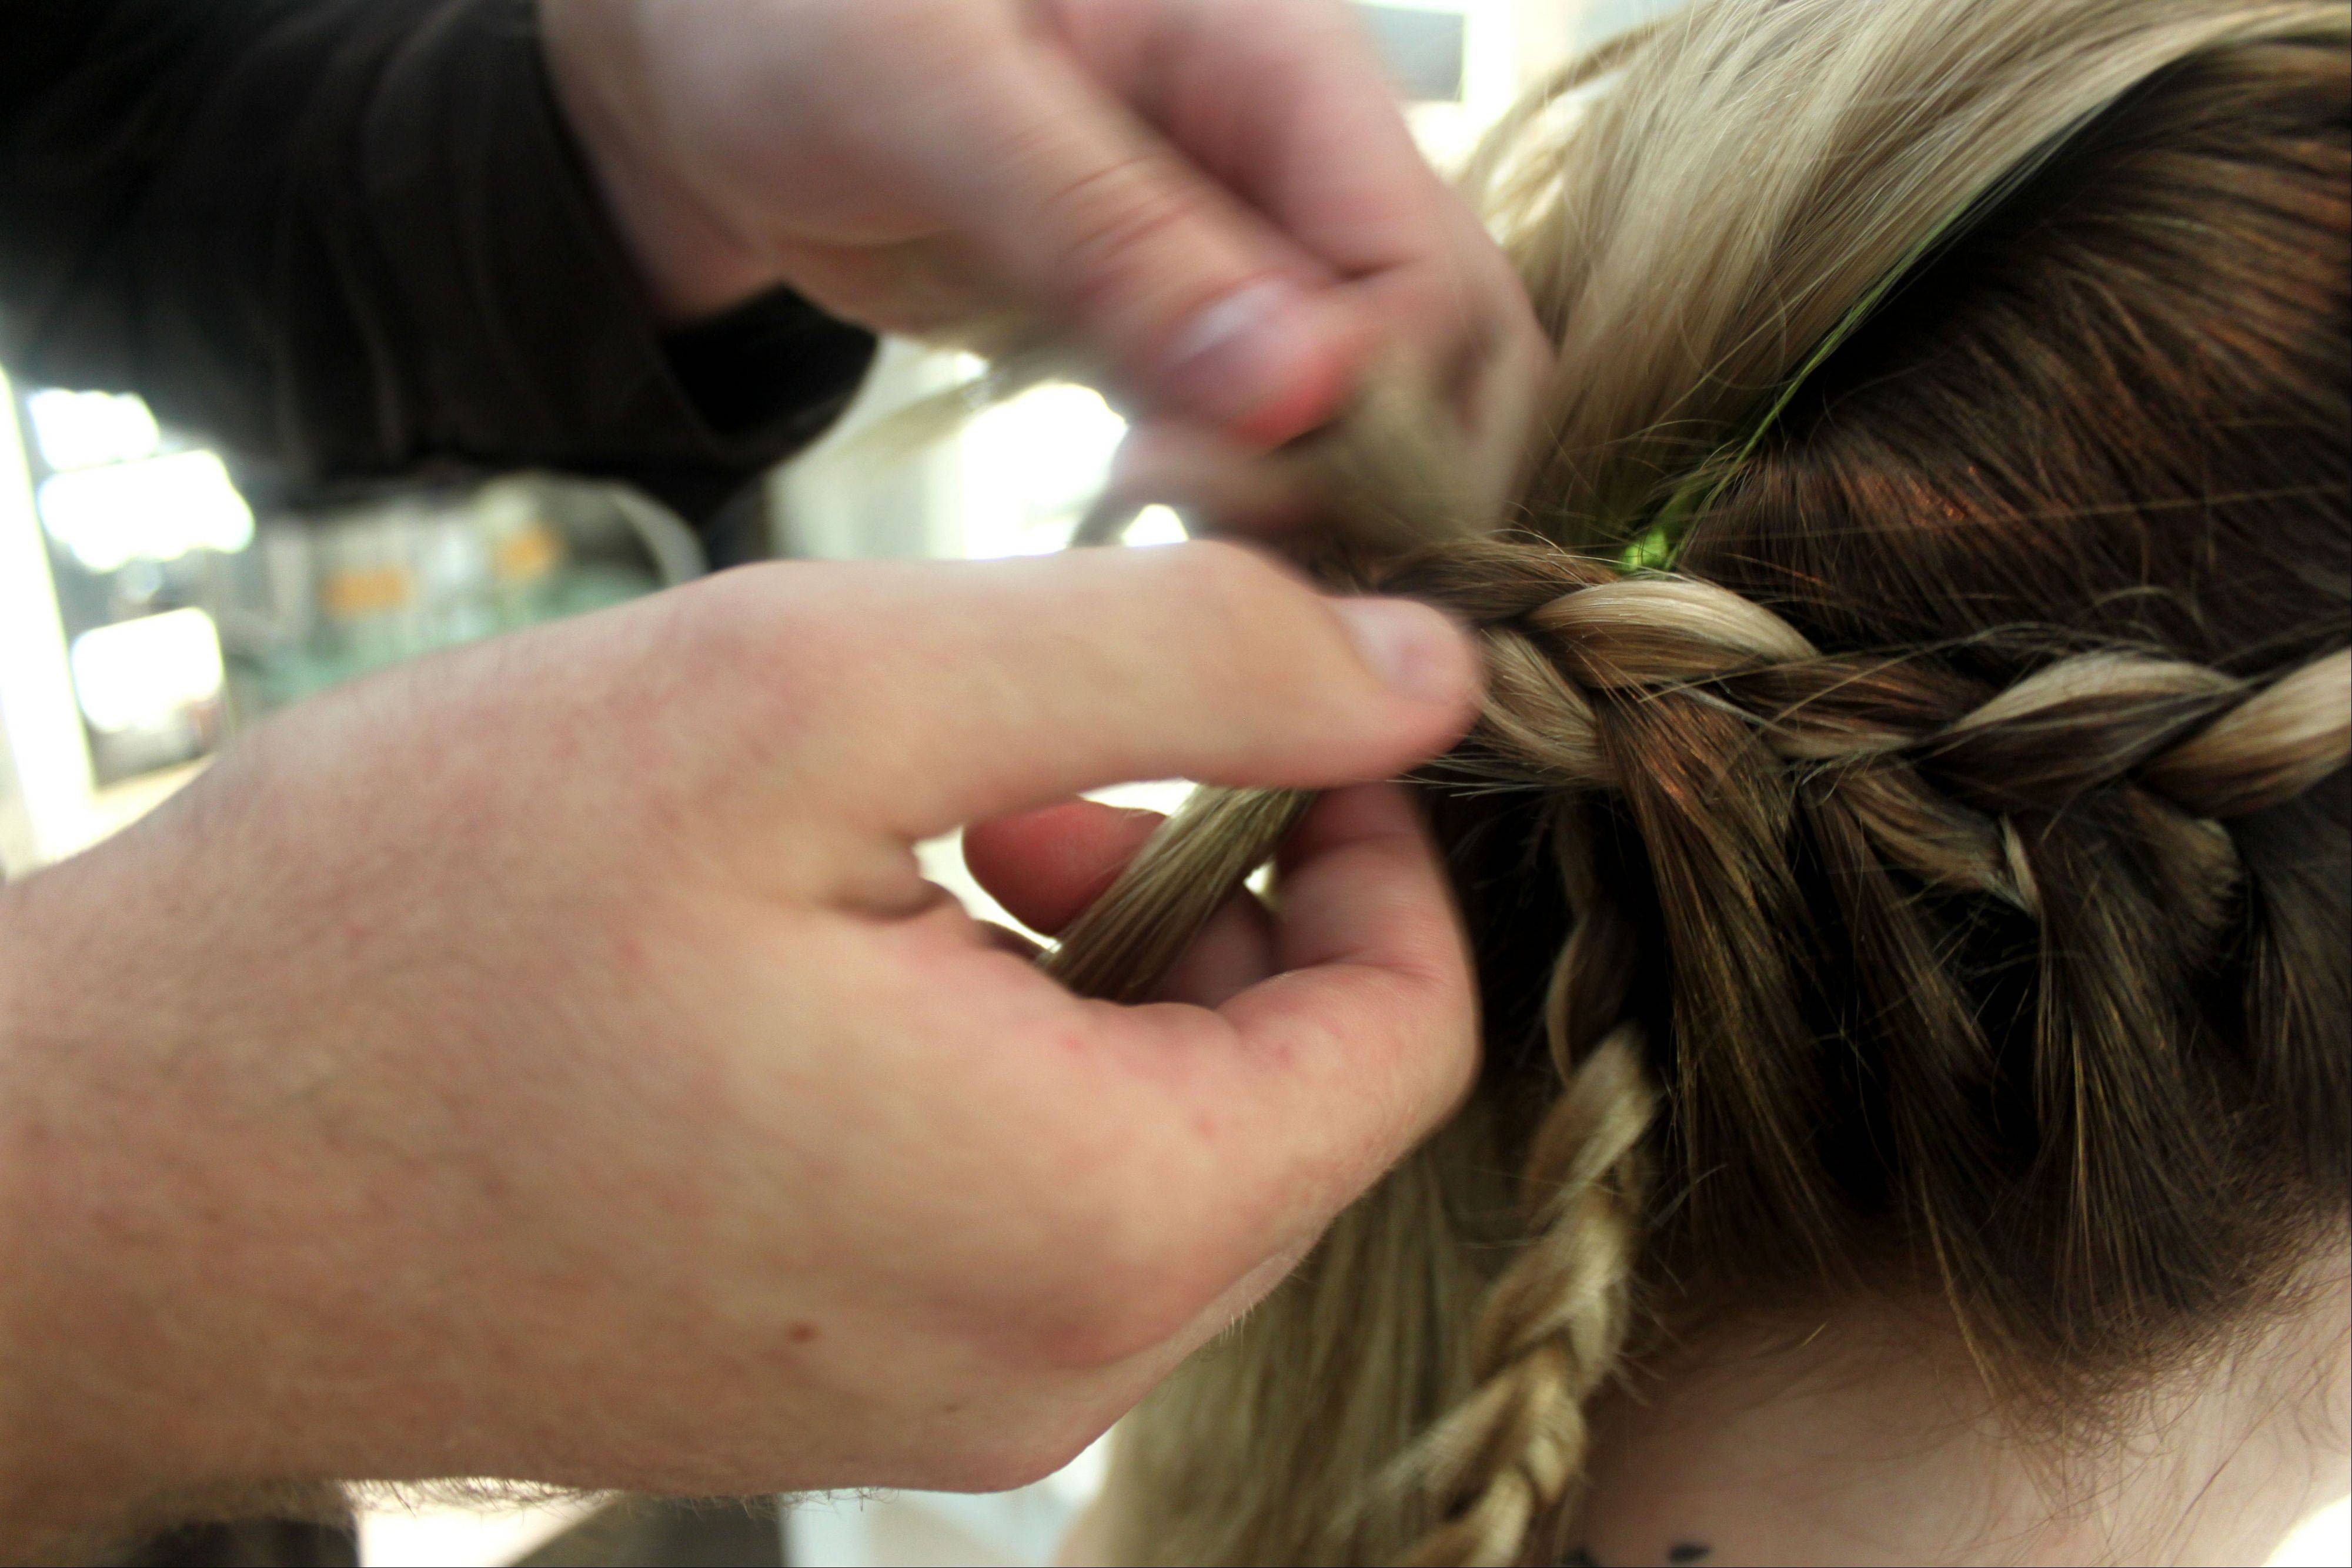 "Stylist Cliff Freeman braids the hair of Danielle Maddox, 25, at Maxine salon's Braid Bar in Chicago on Aug. 1. Salons from Los Angeles to New York are opening ""braid bars,"" offering special menus of different braid styles for a fixed price."